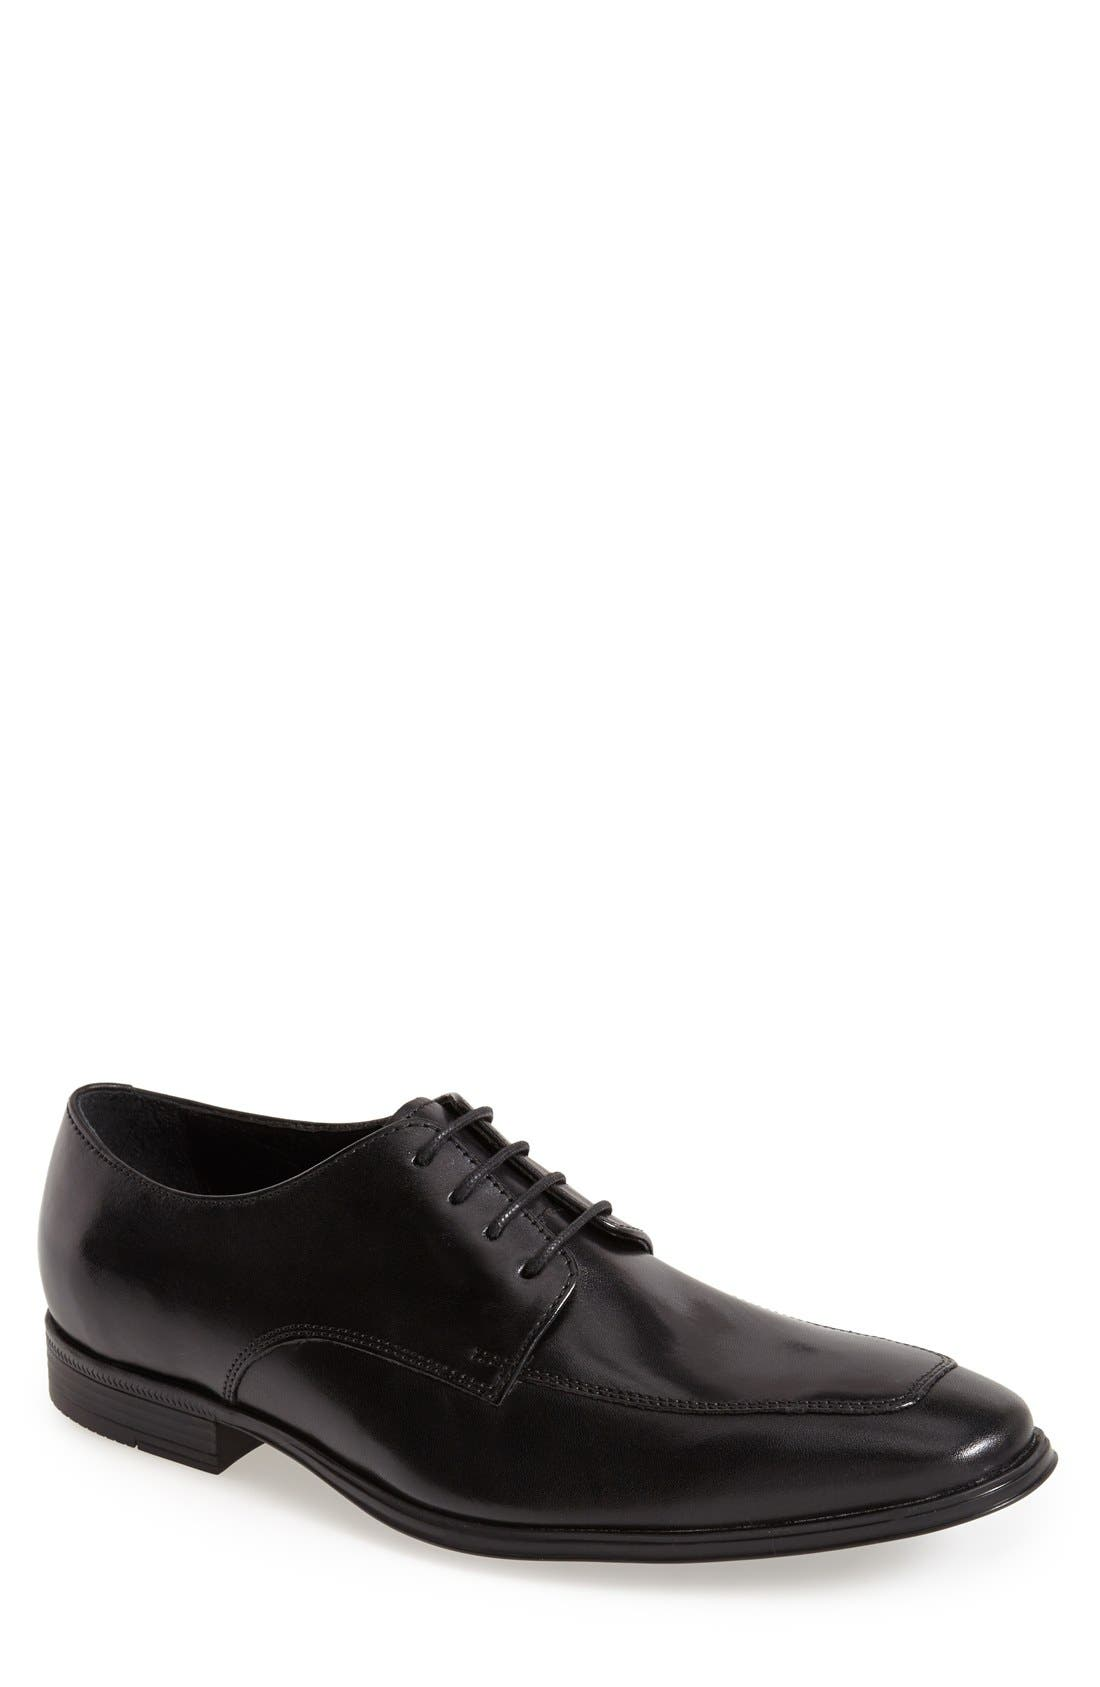 Alternate Image 1 Selected - Cole Haan 'Air Adams' Oxford (Men) (Online Only)